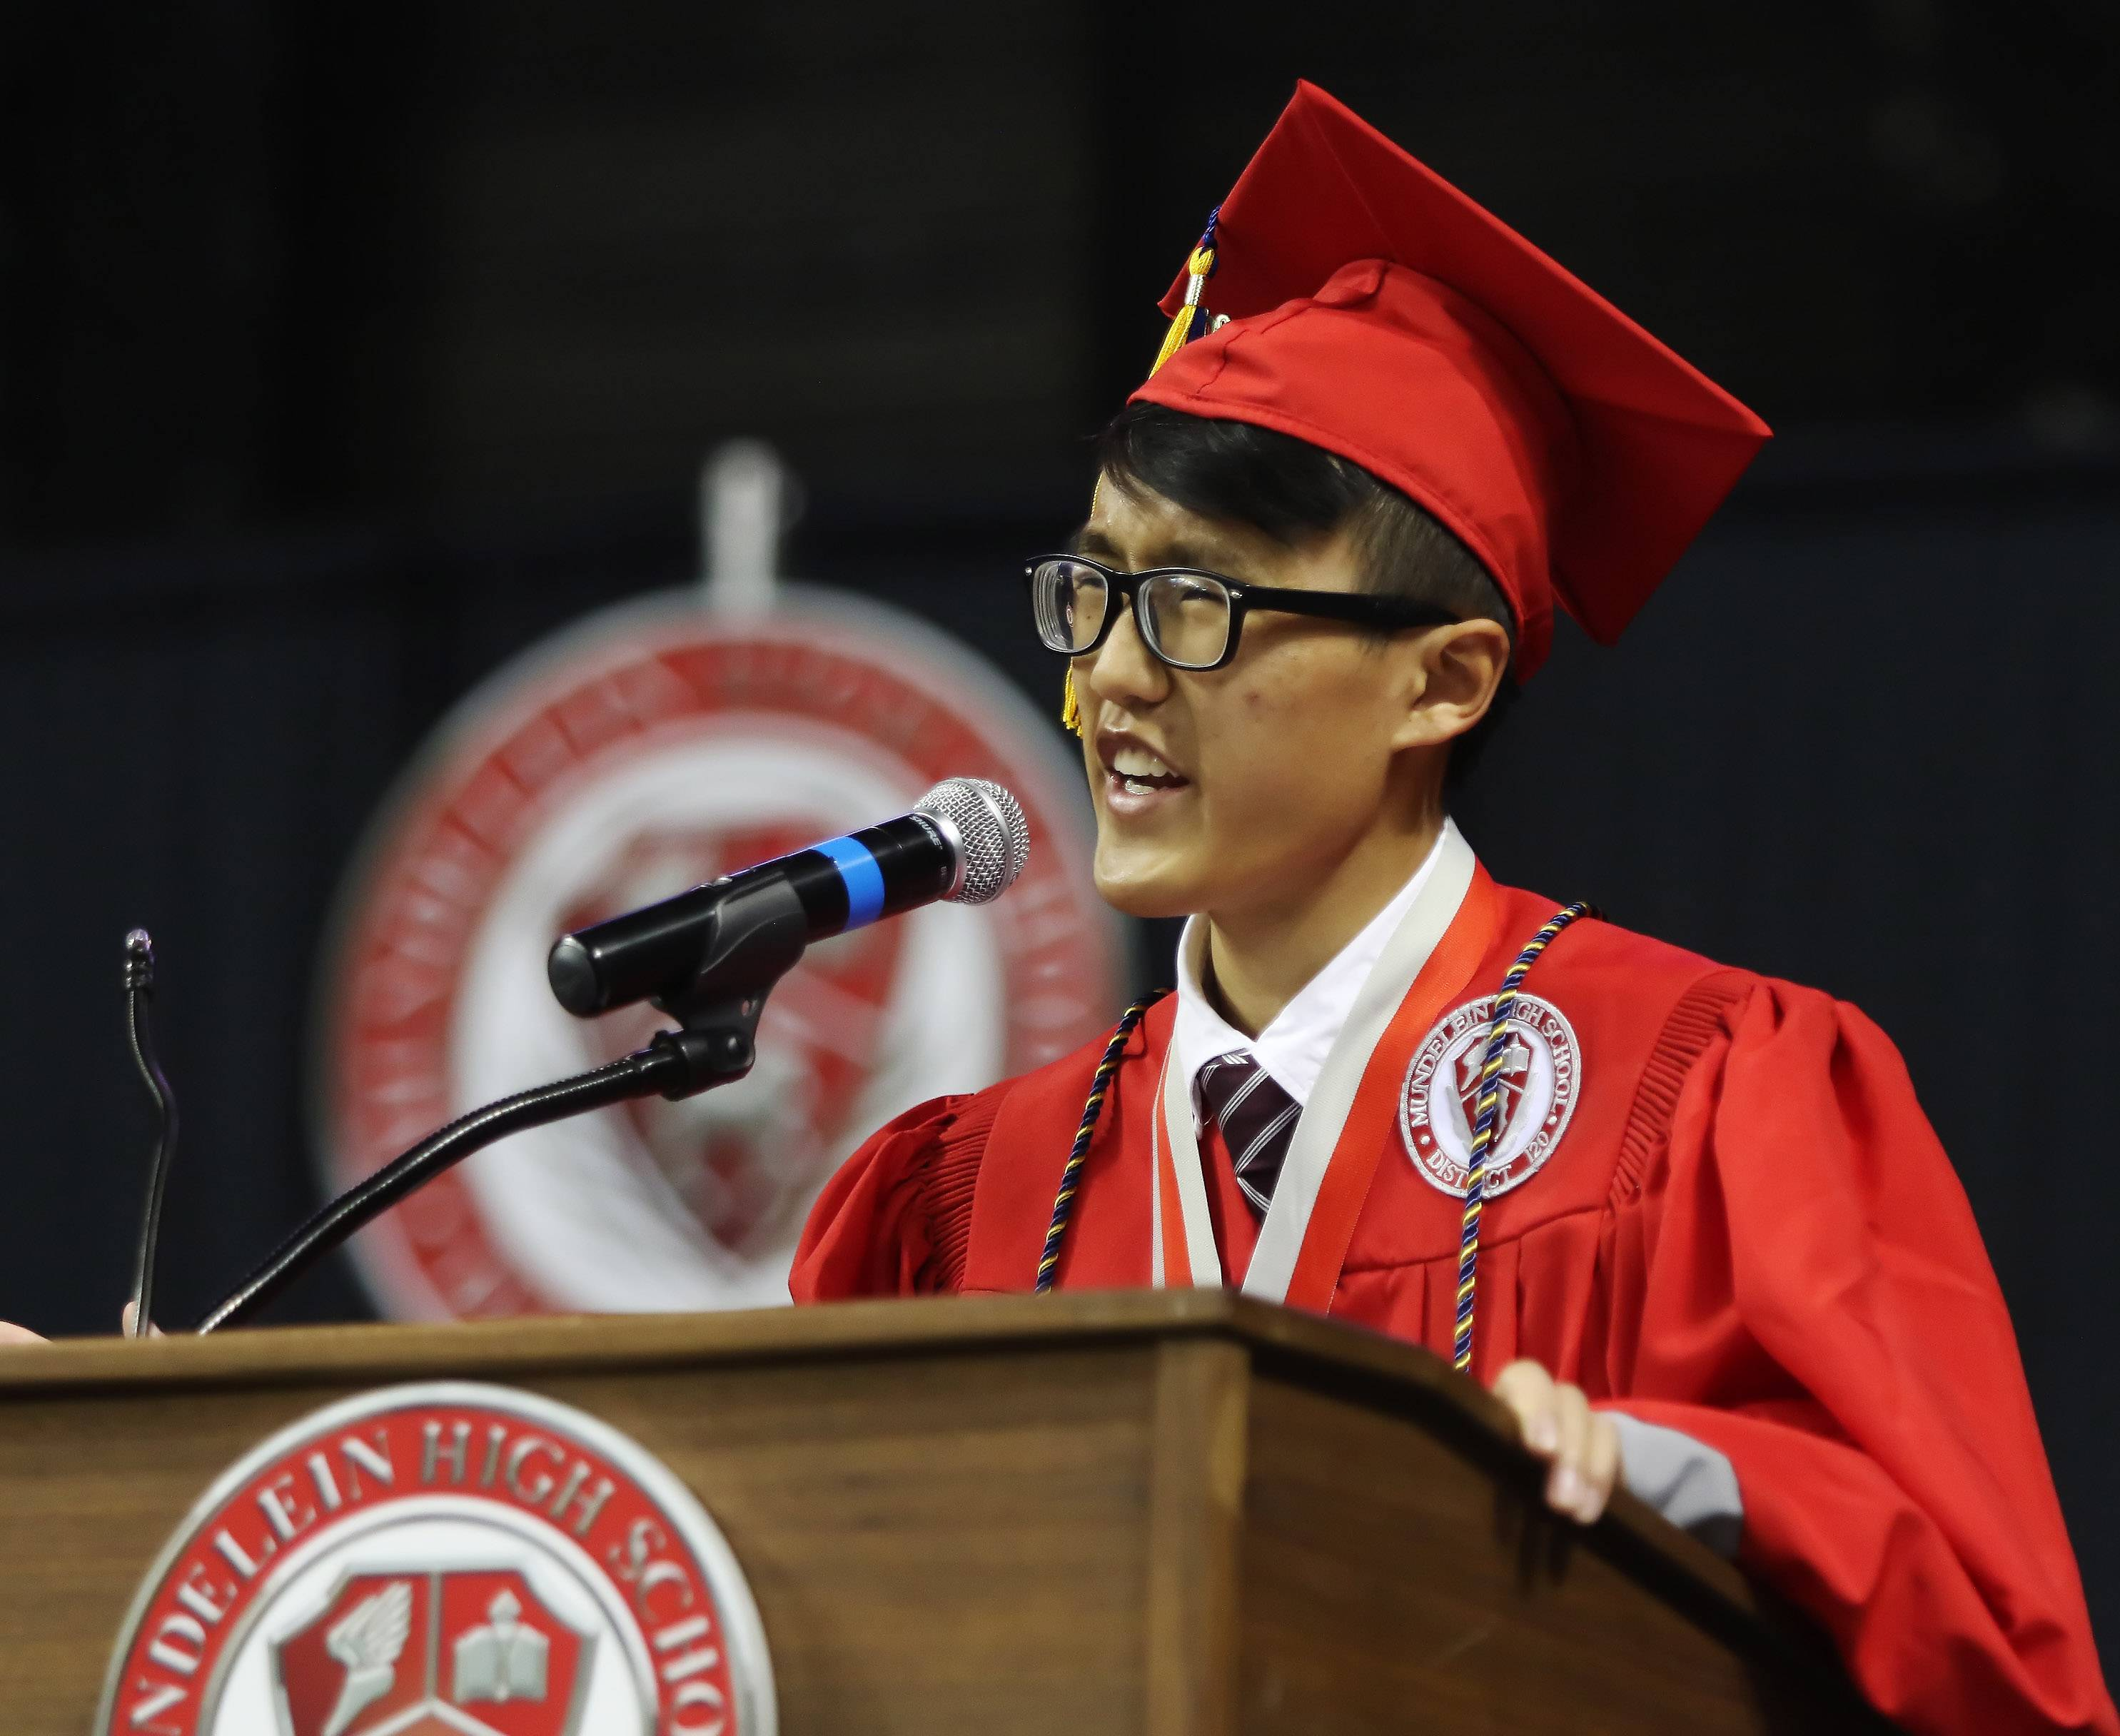 Mundelein High may eliminate class rank, valedictorians